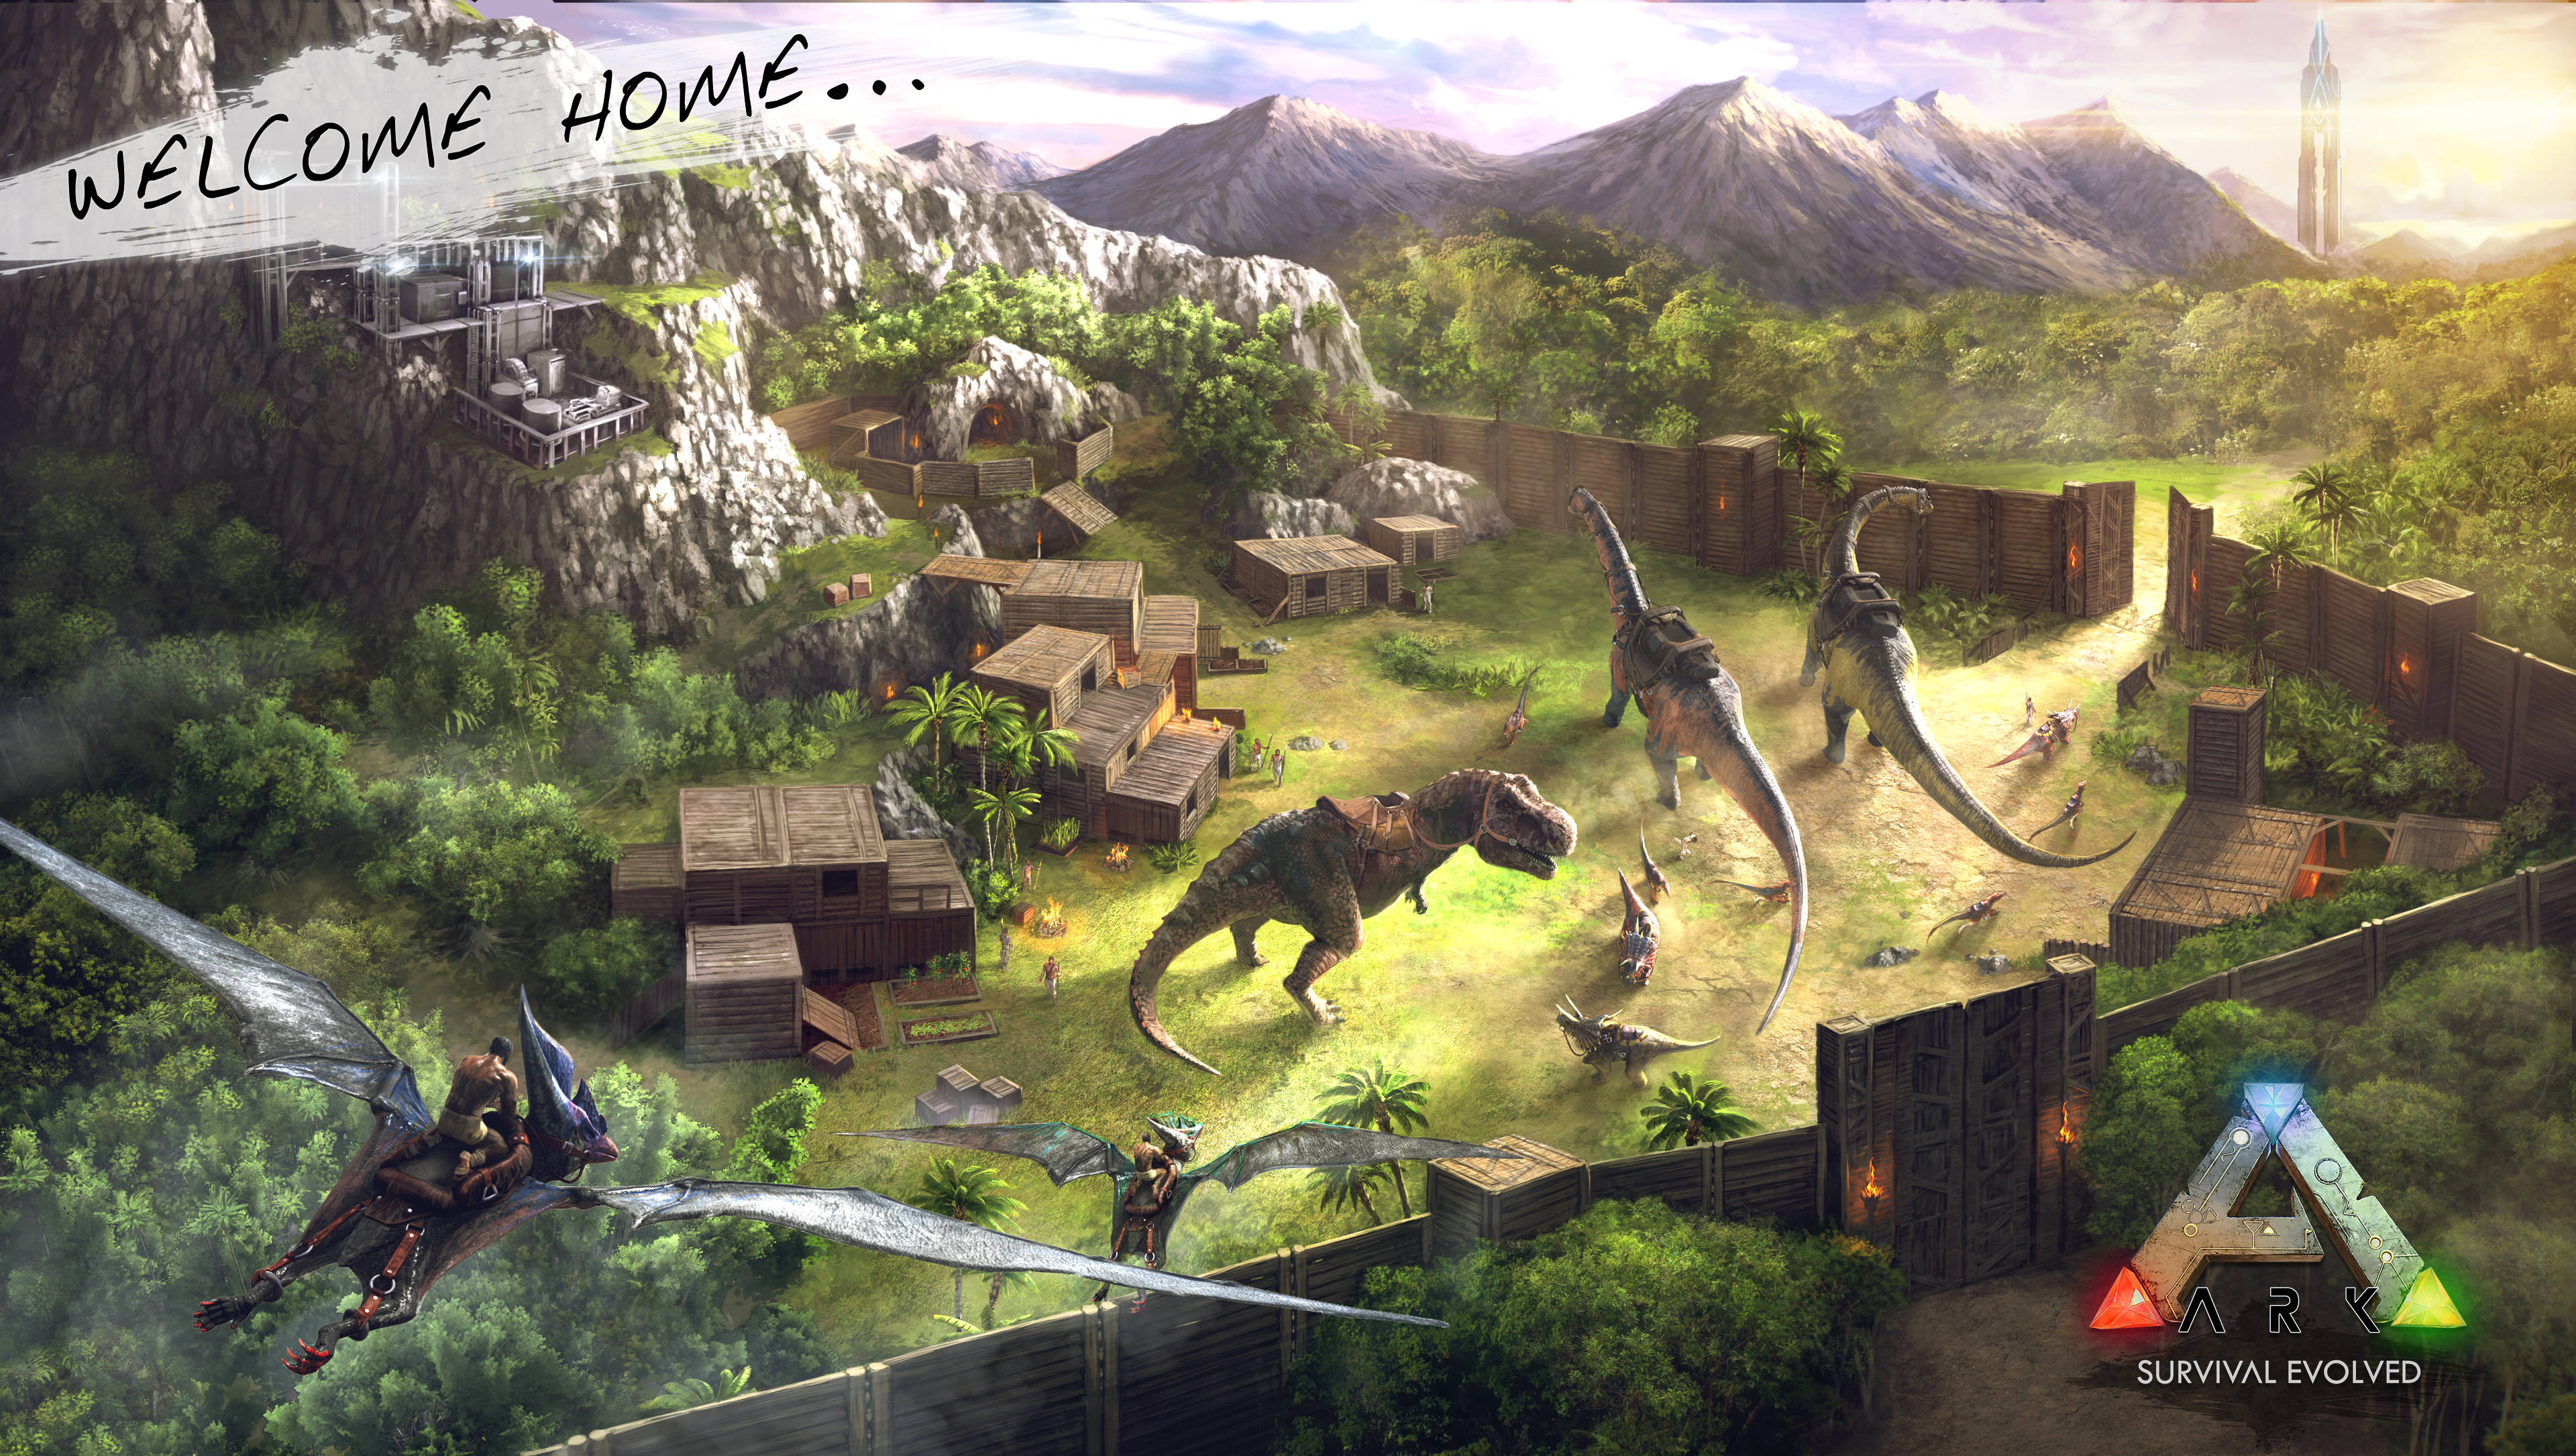 ark_survival_evolved_available_for_linux_mac_windows_pc_welcome_home